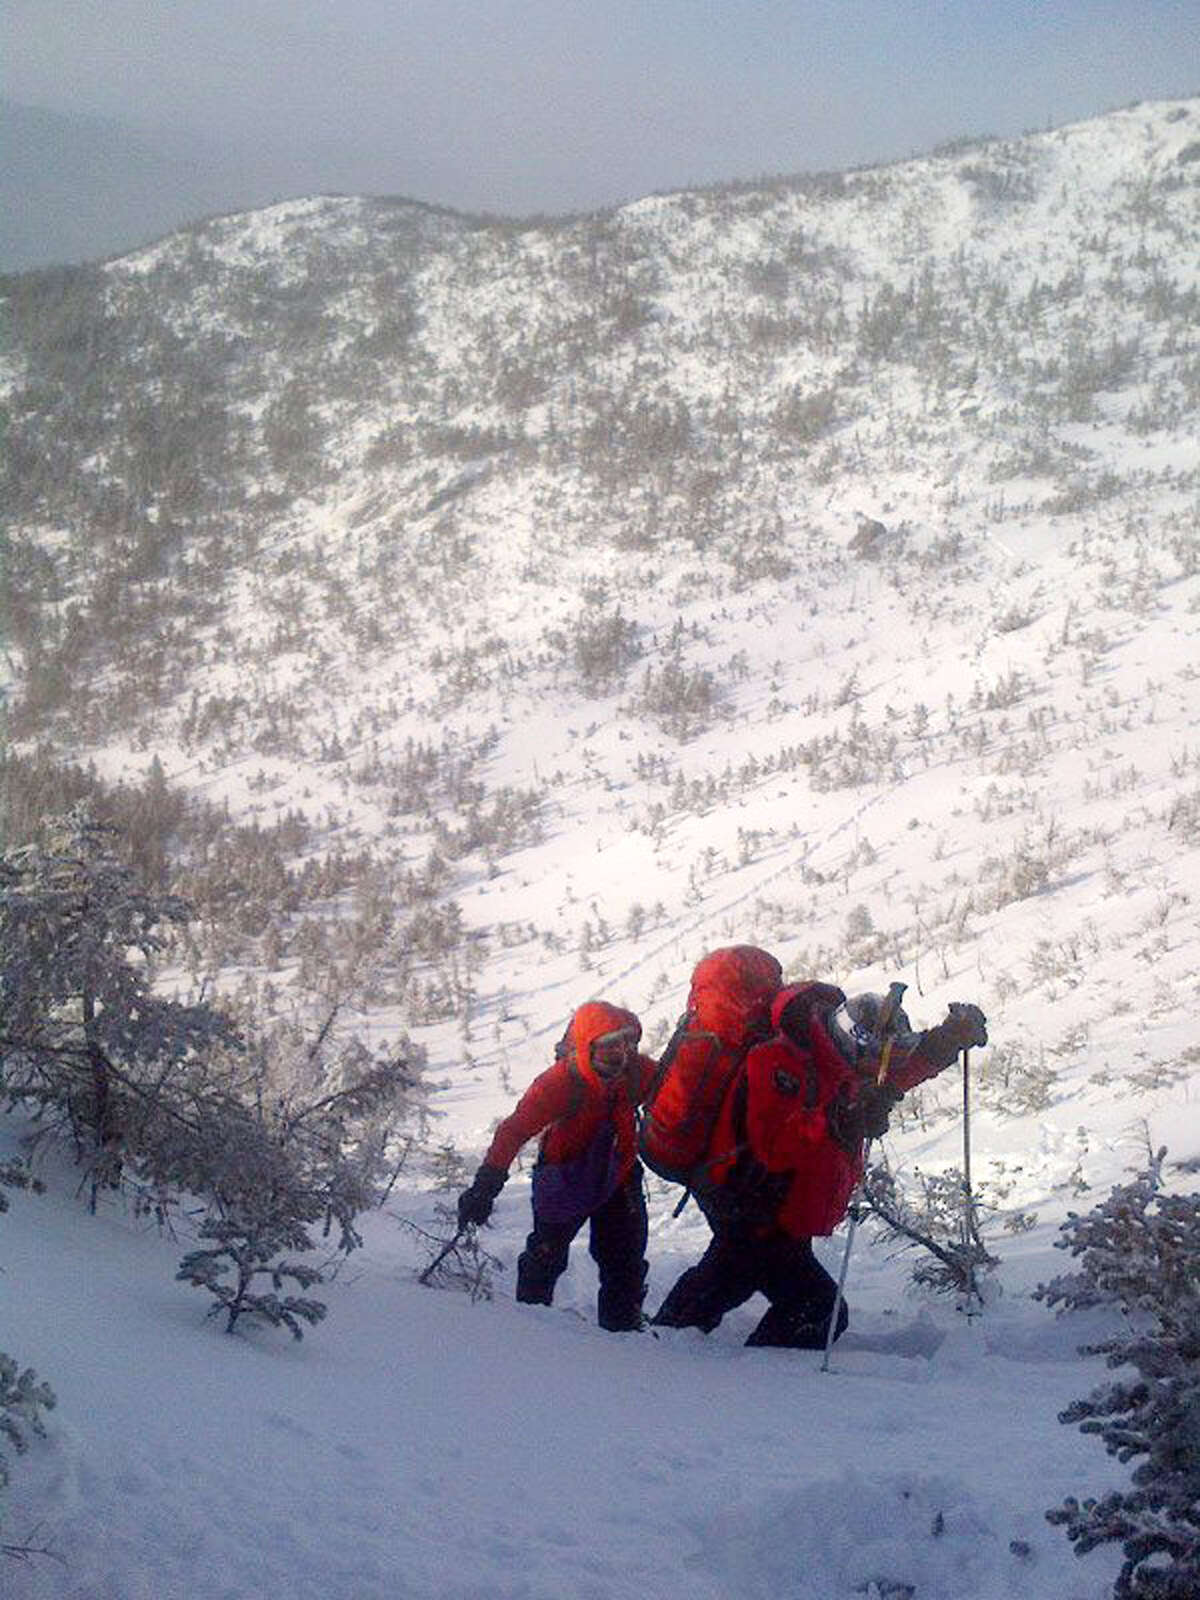 New York State Department of Environmental Conservation Forest Rangers search for a mother and her two sons on Mt. Marcy last weekend in Essex County, N.Y. (New York State DEC) ORG XMIT: H2LGk0Ysiml7AGdCSS3a